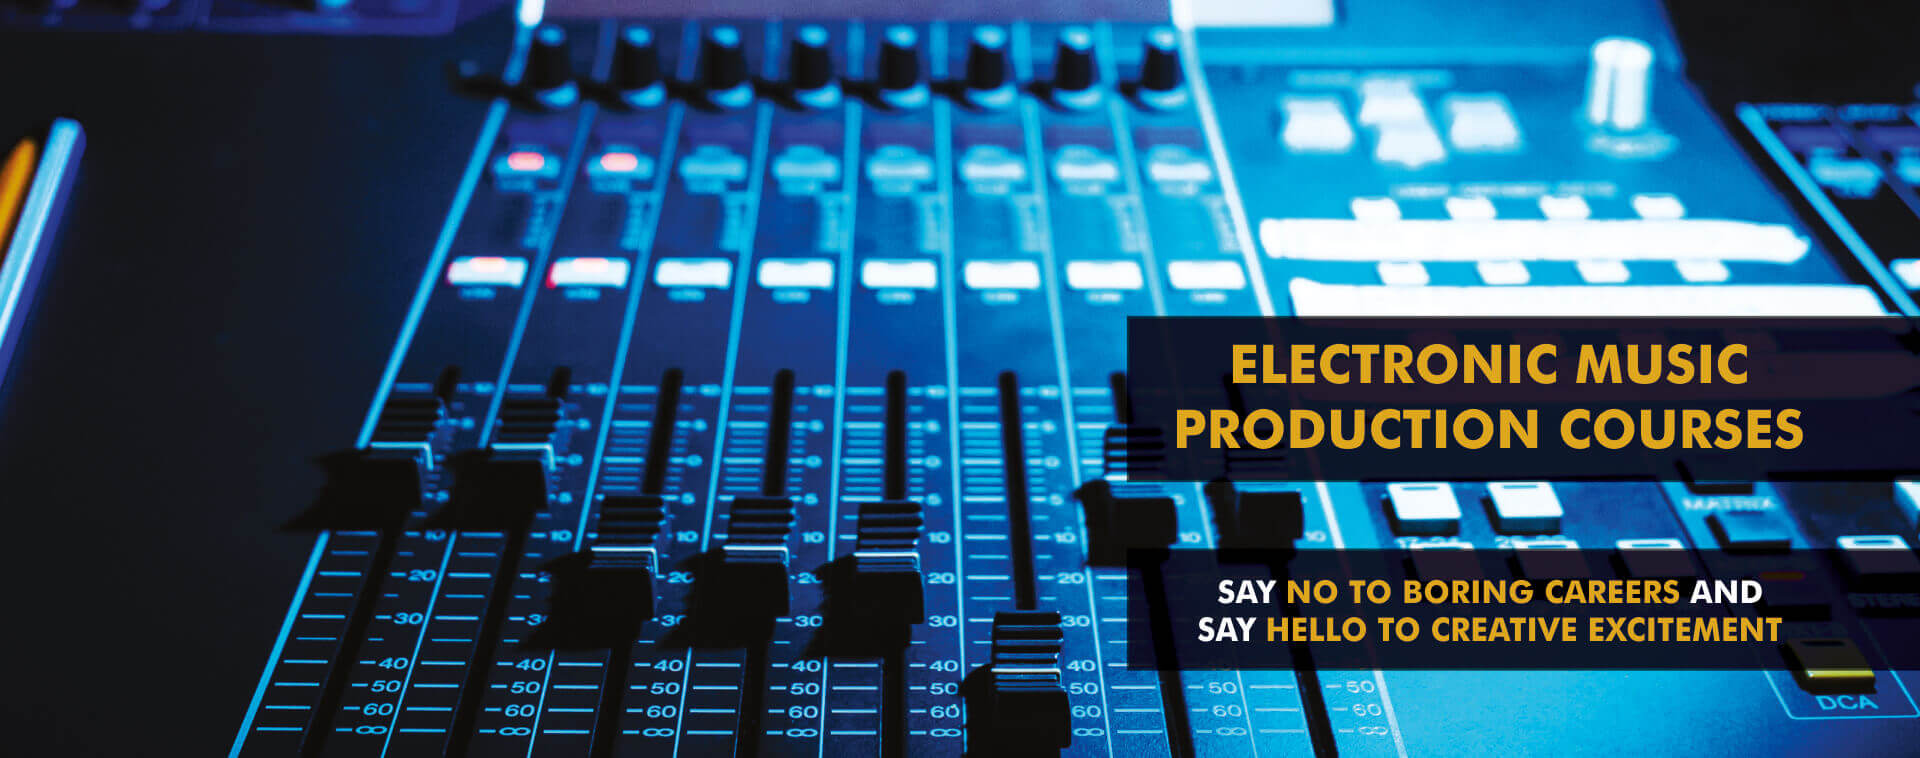 Electronic Music Production